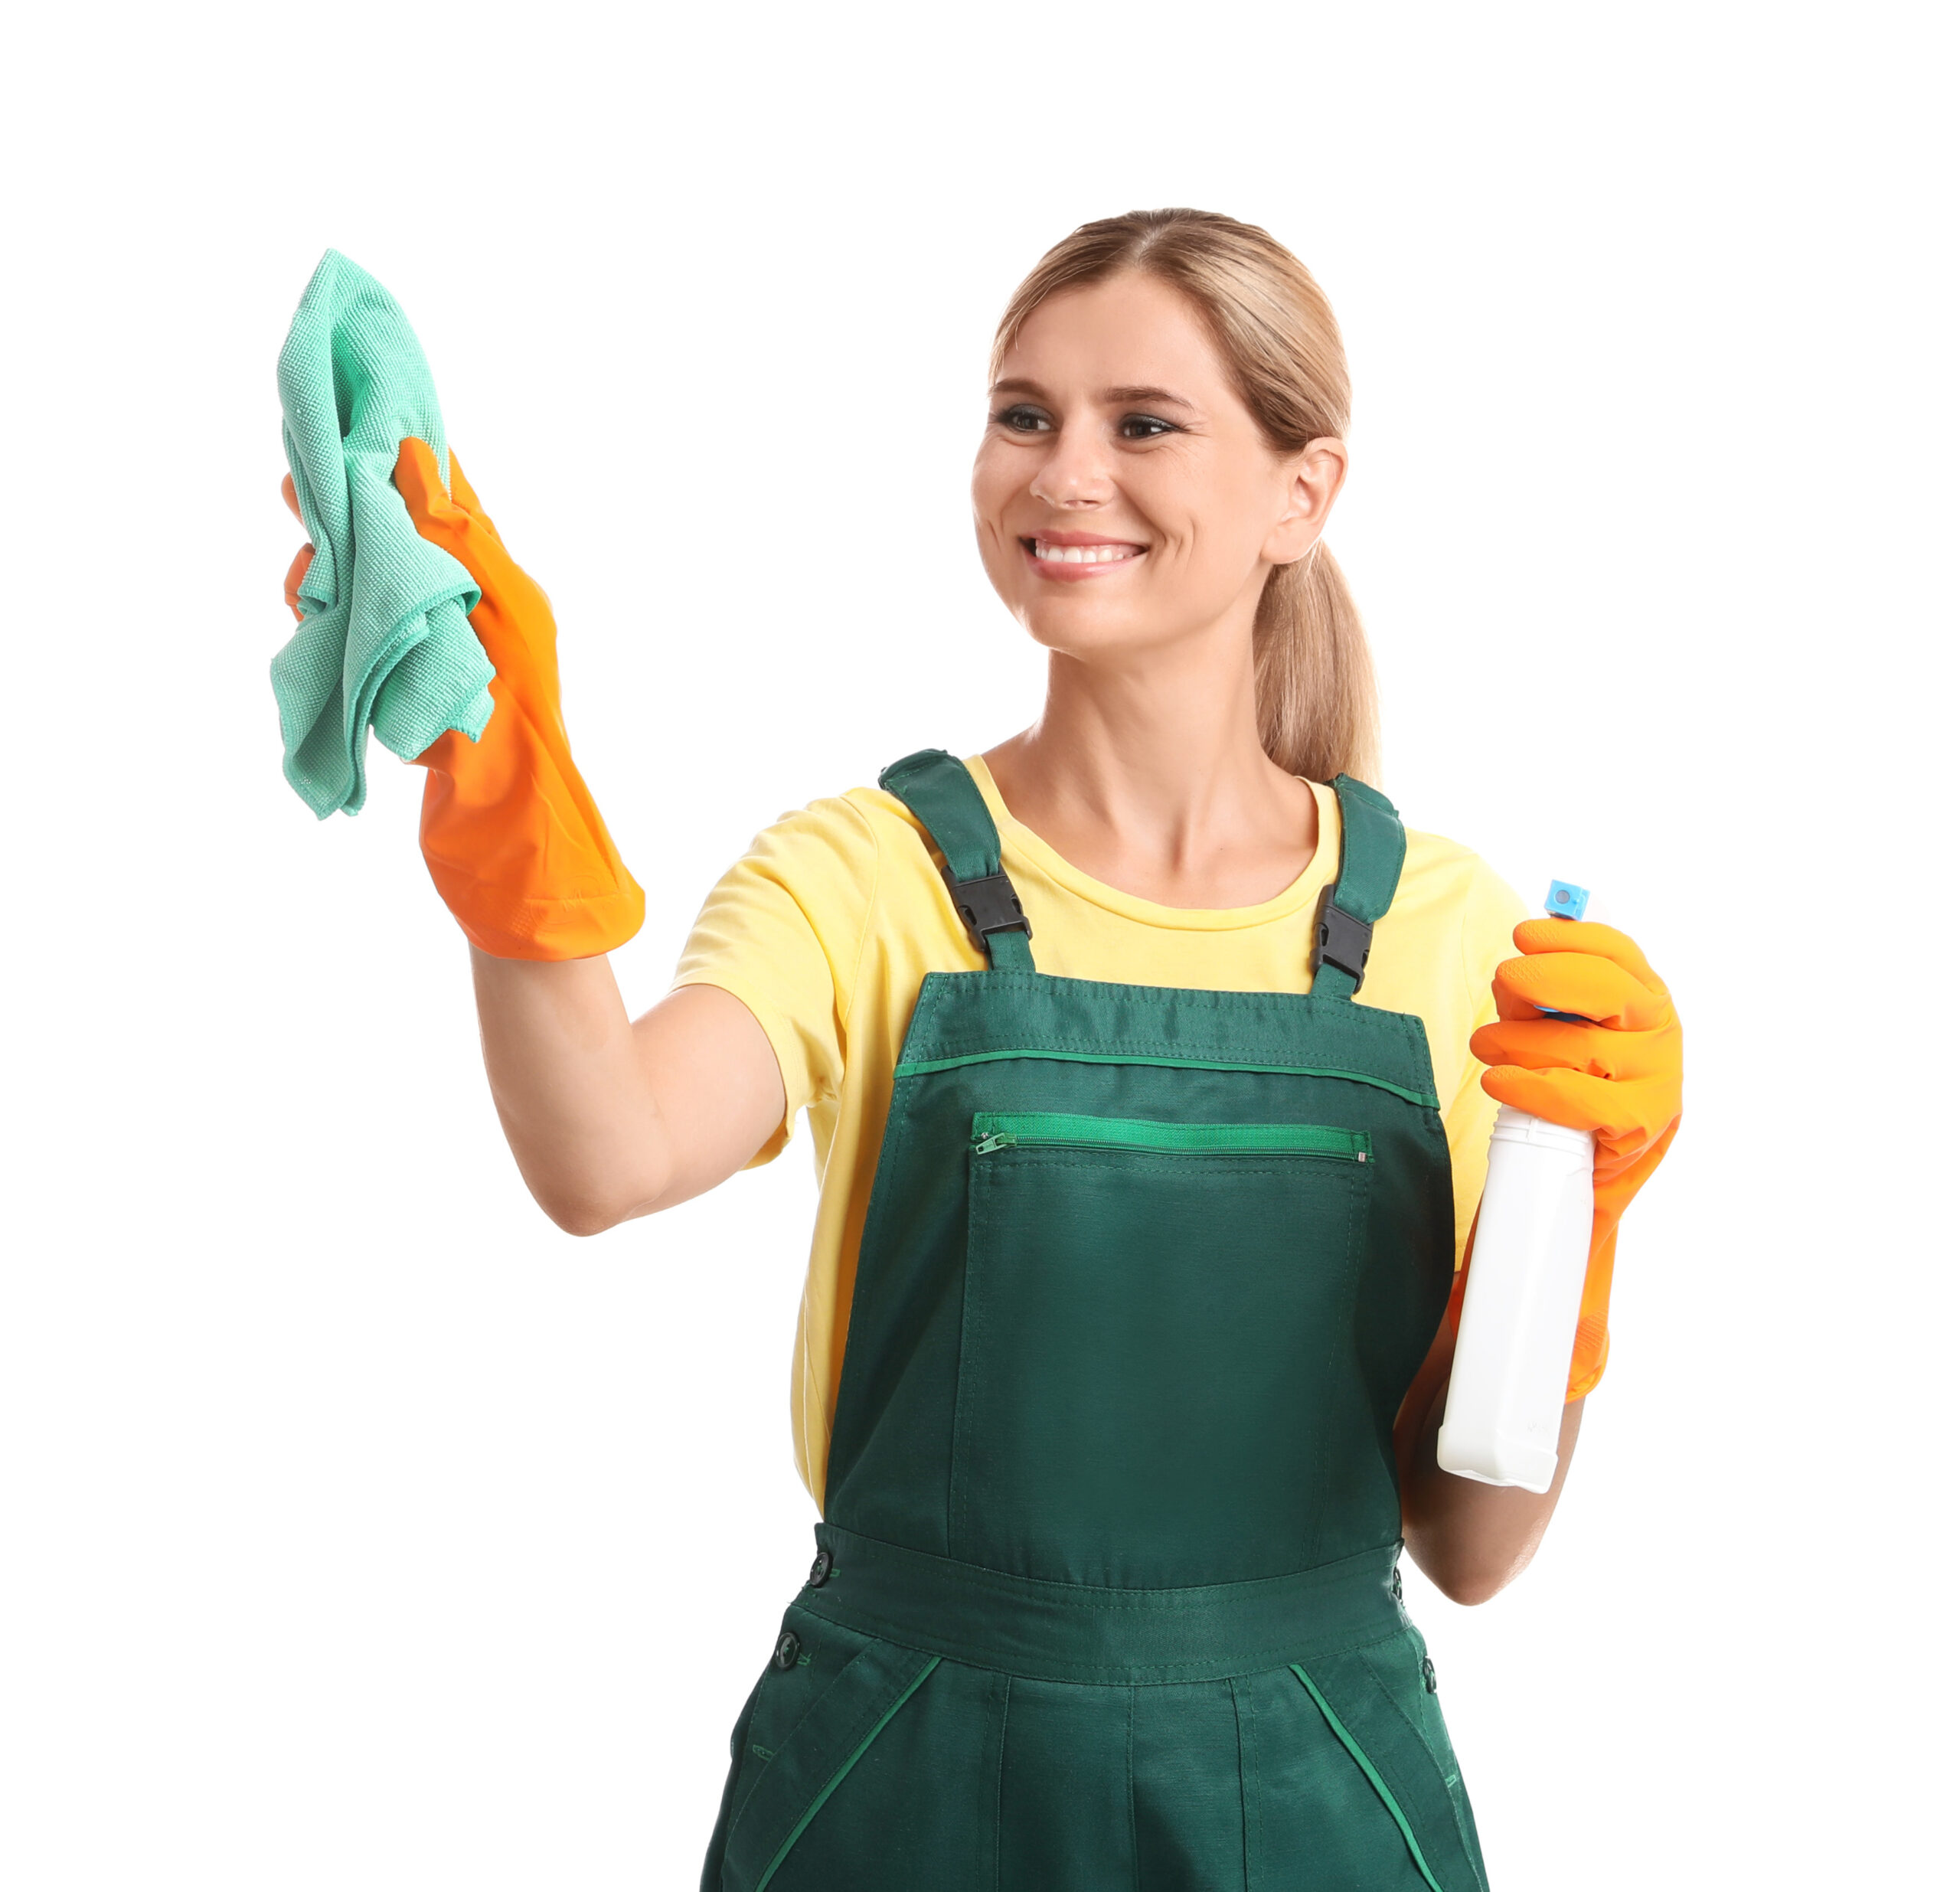 Professional window cleaner using window cleaning chemicals